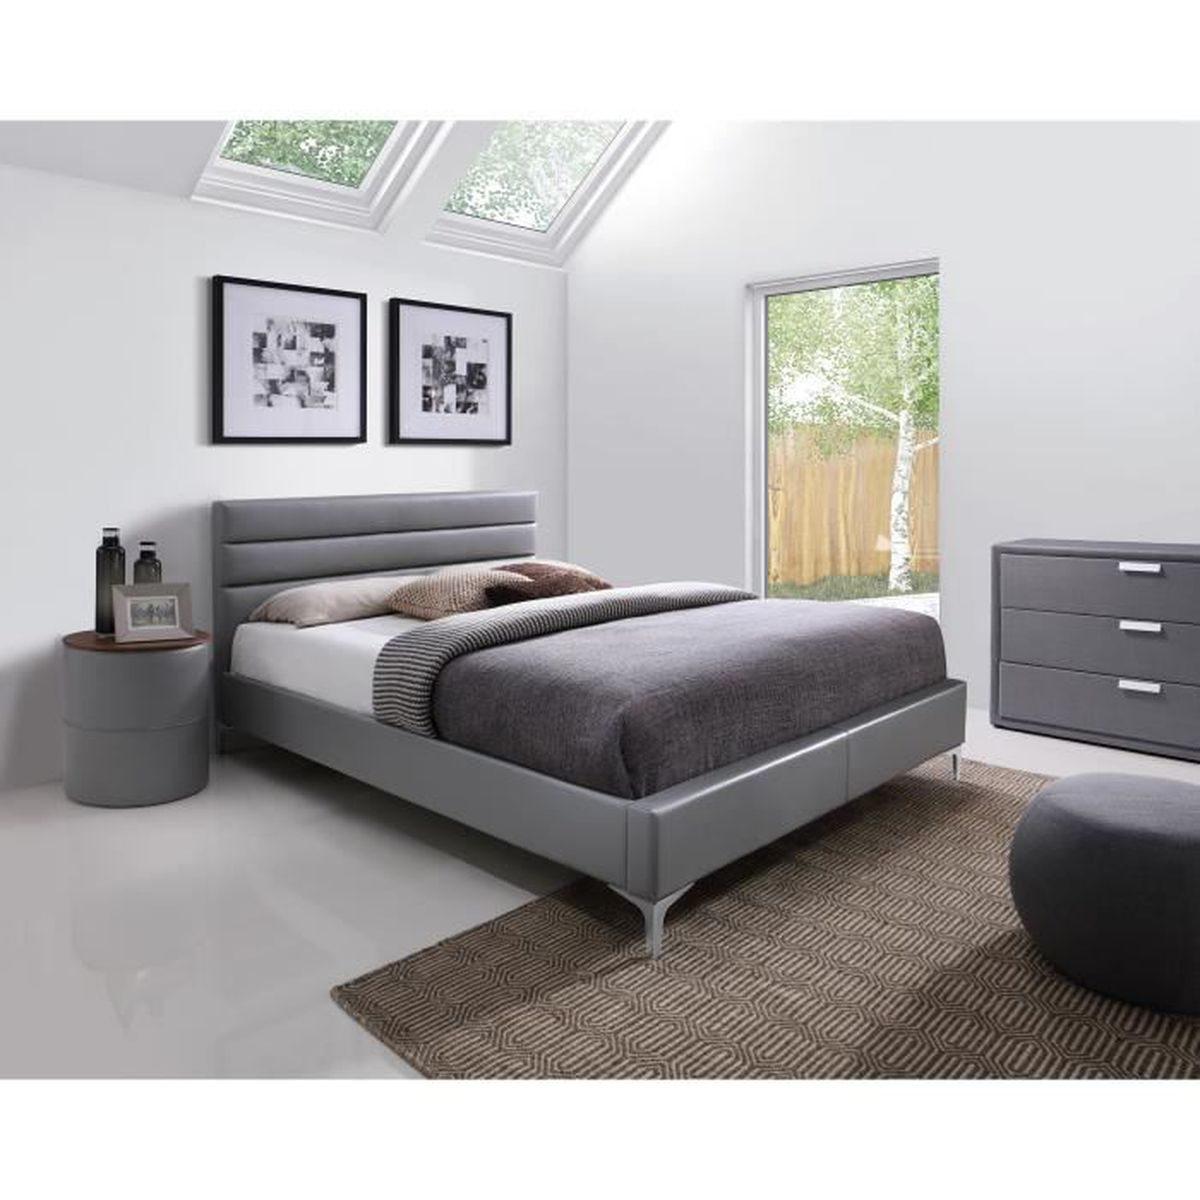 price factory lit adulte design gris thomas 140x200 cm avec sommier meuble en simili cuir. Black Bedroom Furniture Sets. Home Design Ideas